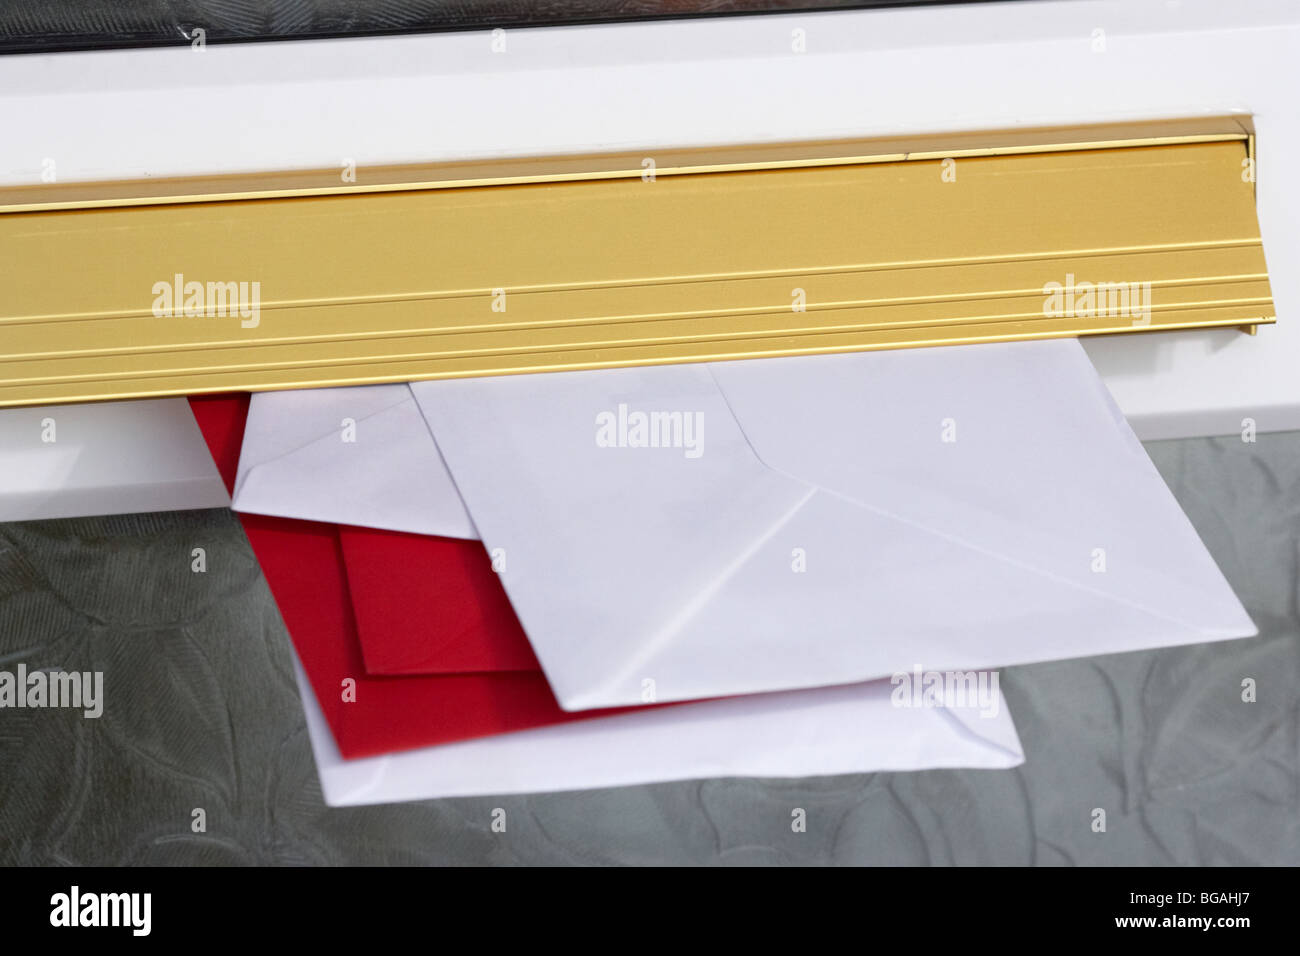 letters and cards sticking out of the letterbox of a house in the uk - Stock Image